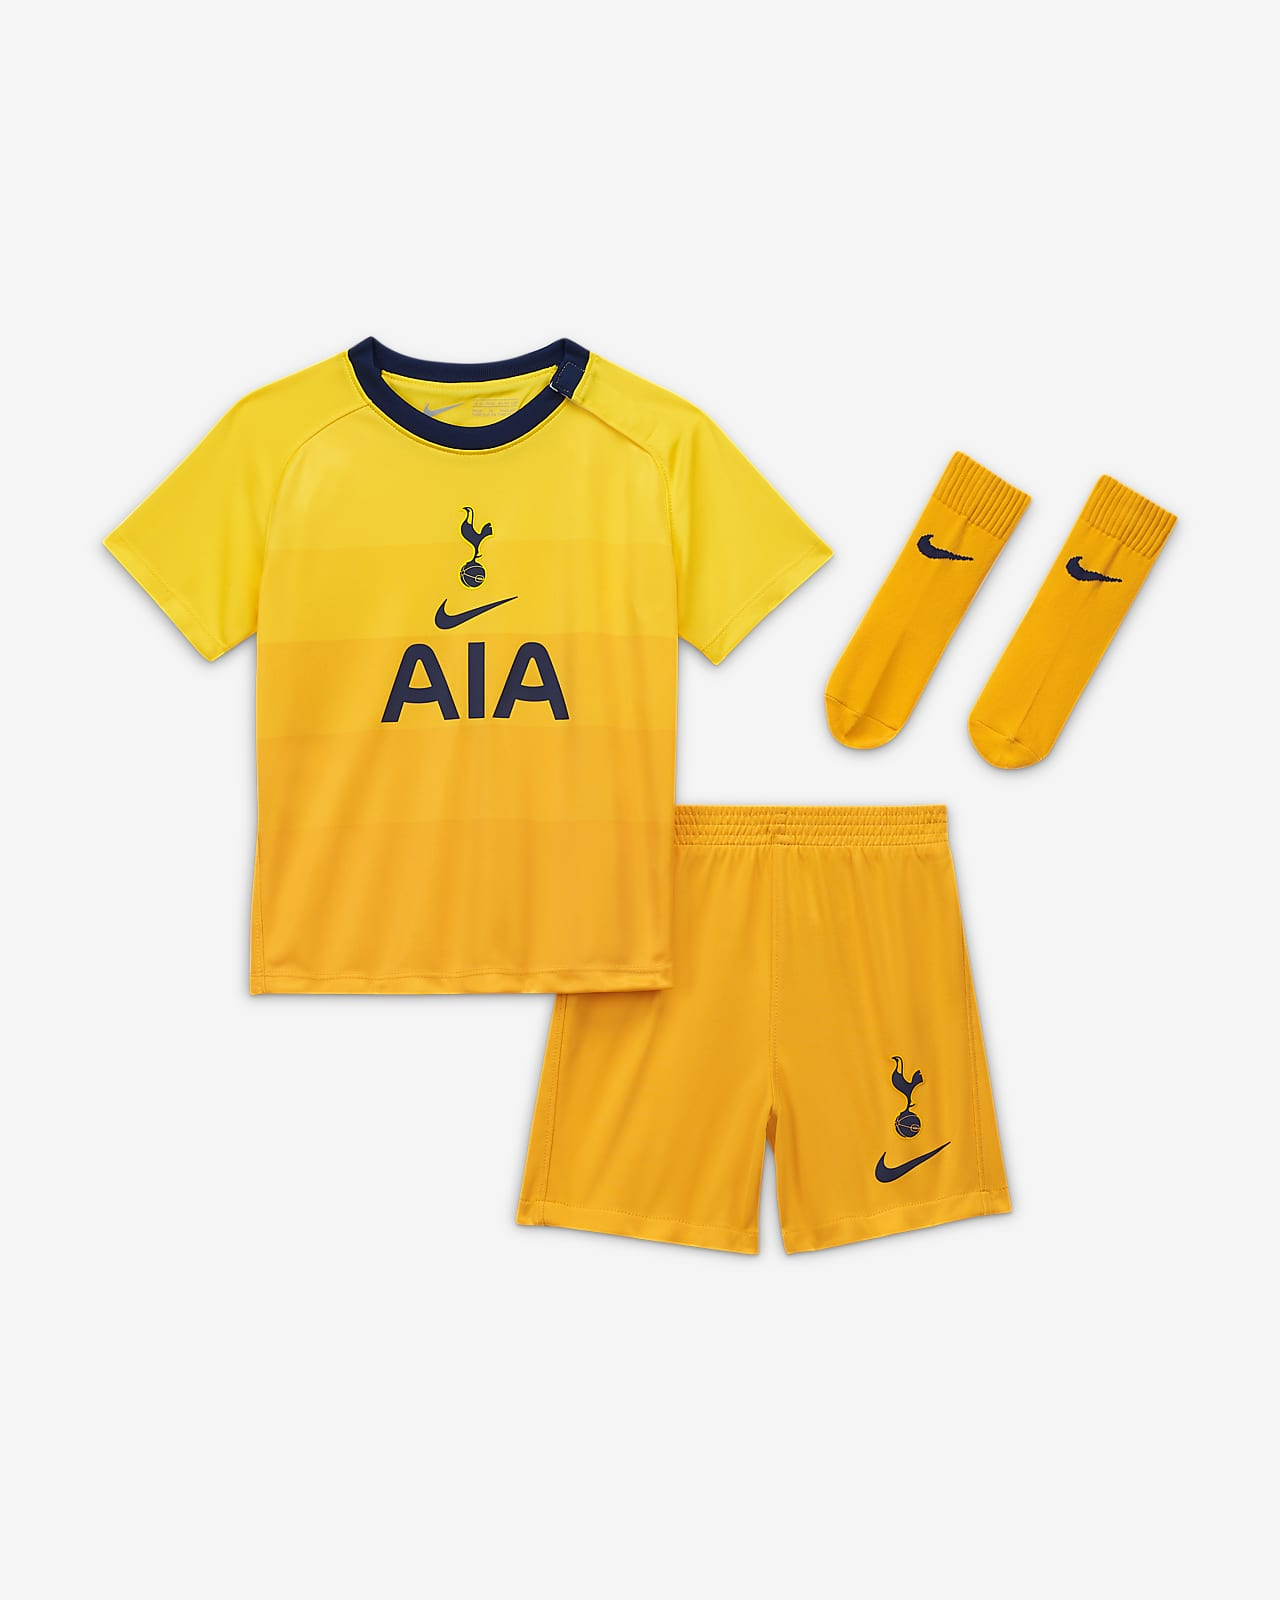 Tottenham Hotspur 2020/21 Third Baby and Toddler Football Kit